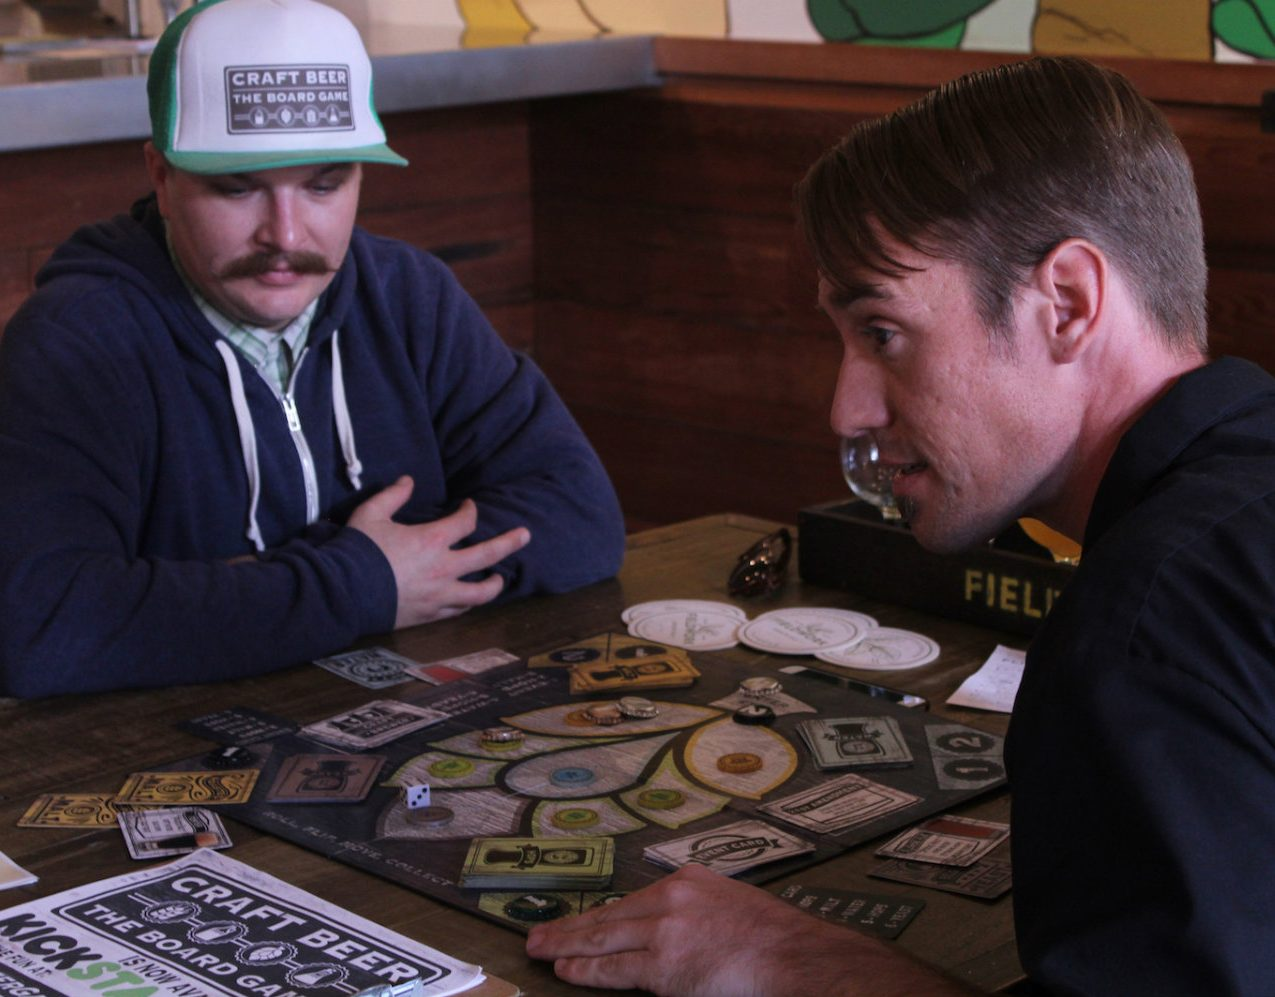 Sacramento State alumnus Collin Poseley, right, and his business partner Eric Foust, left, play the table top game they both created,